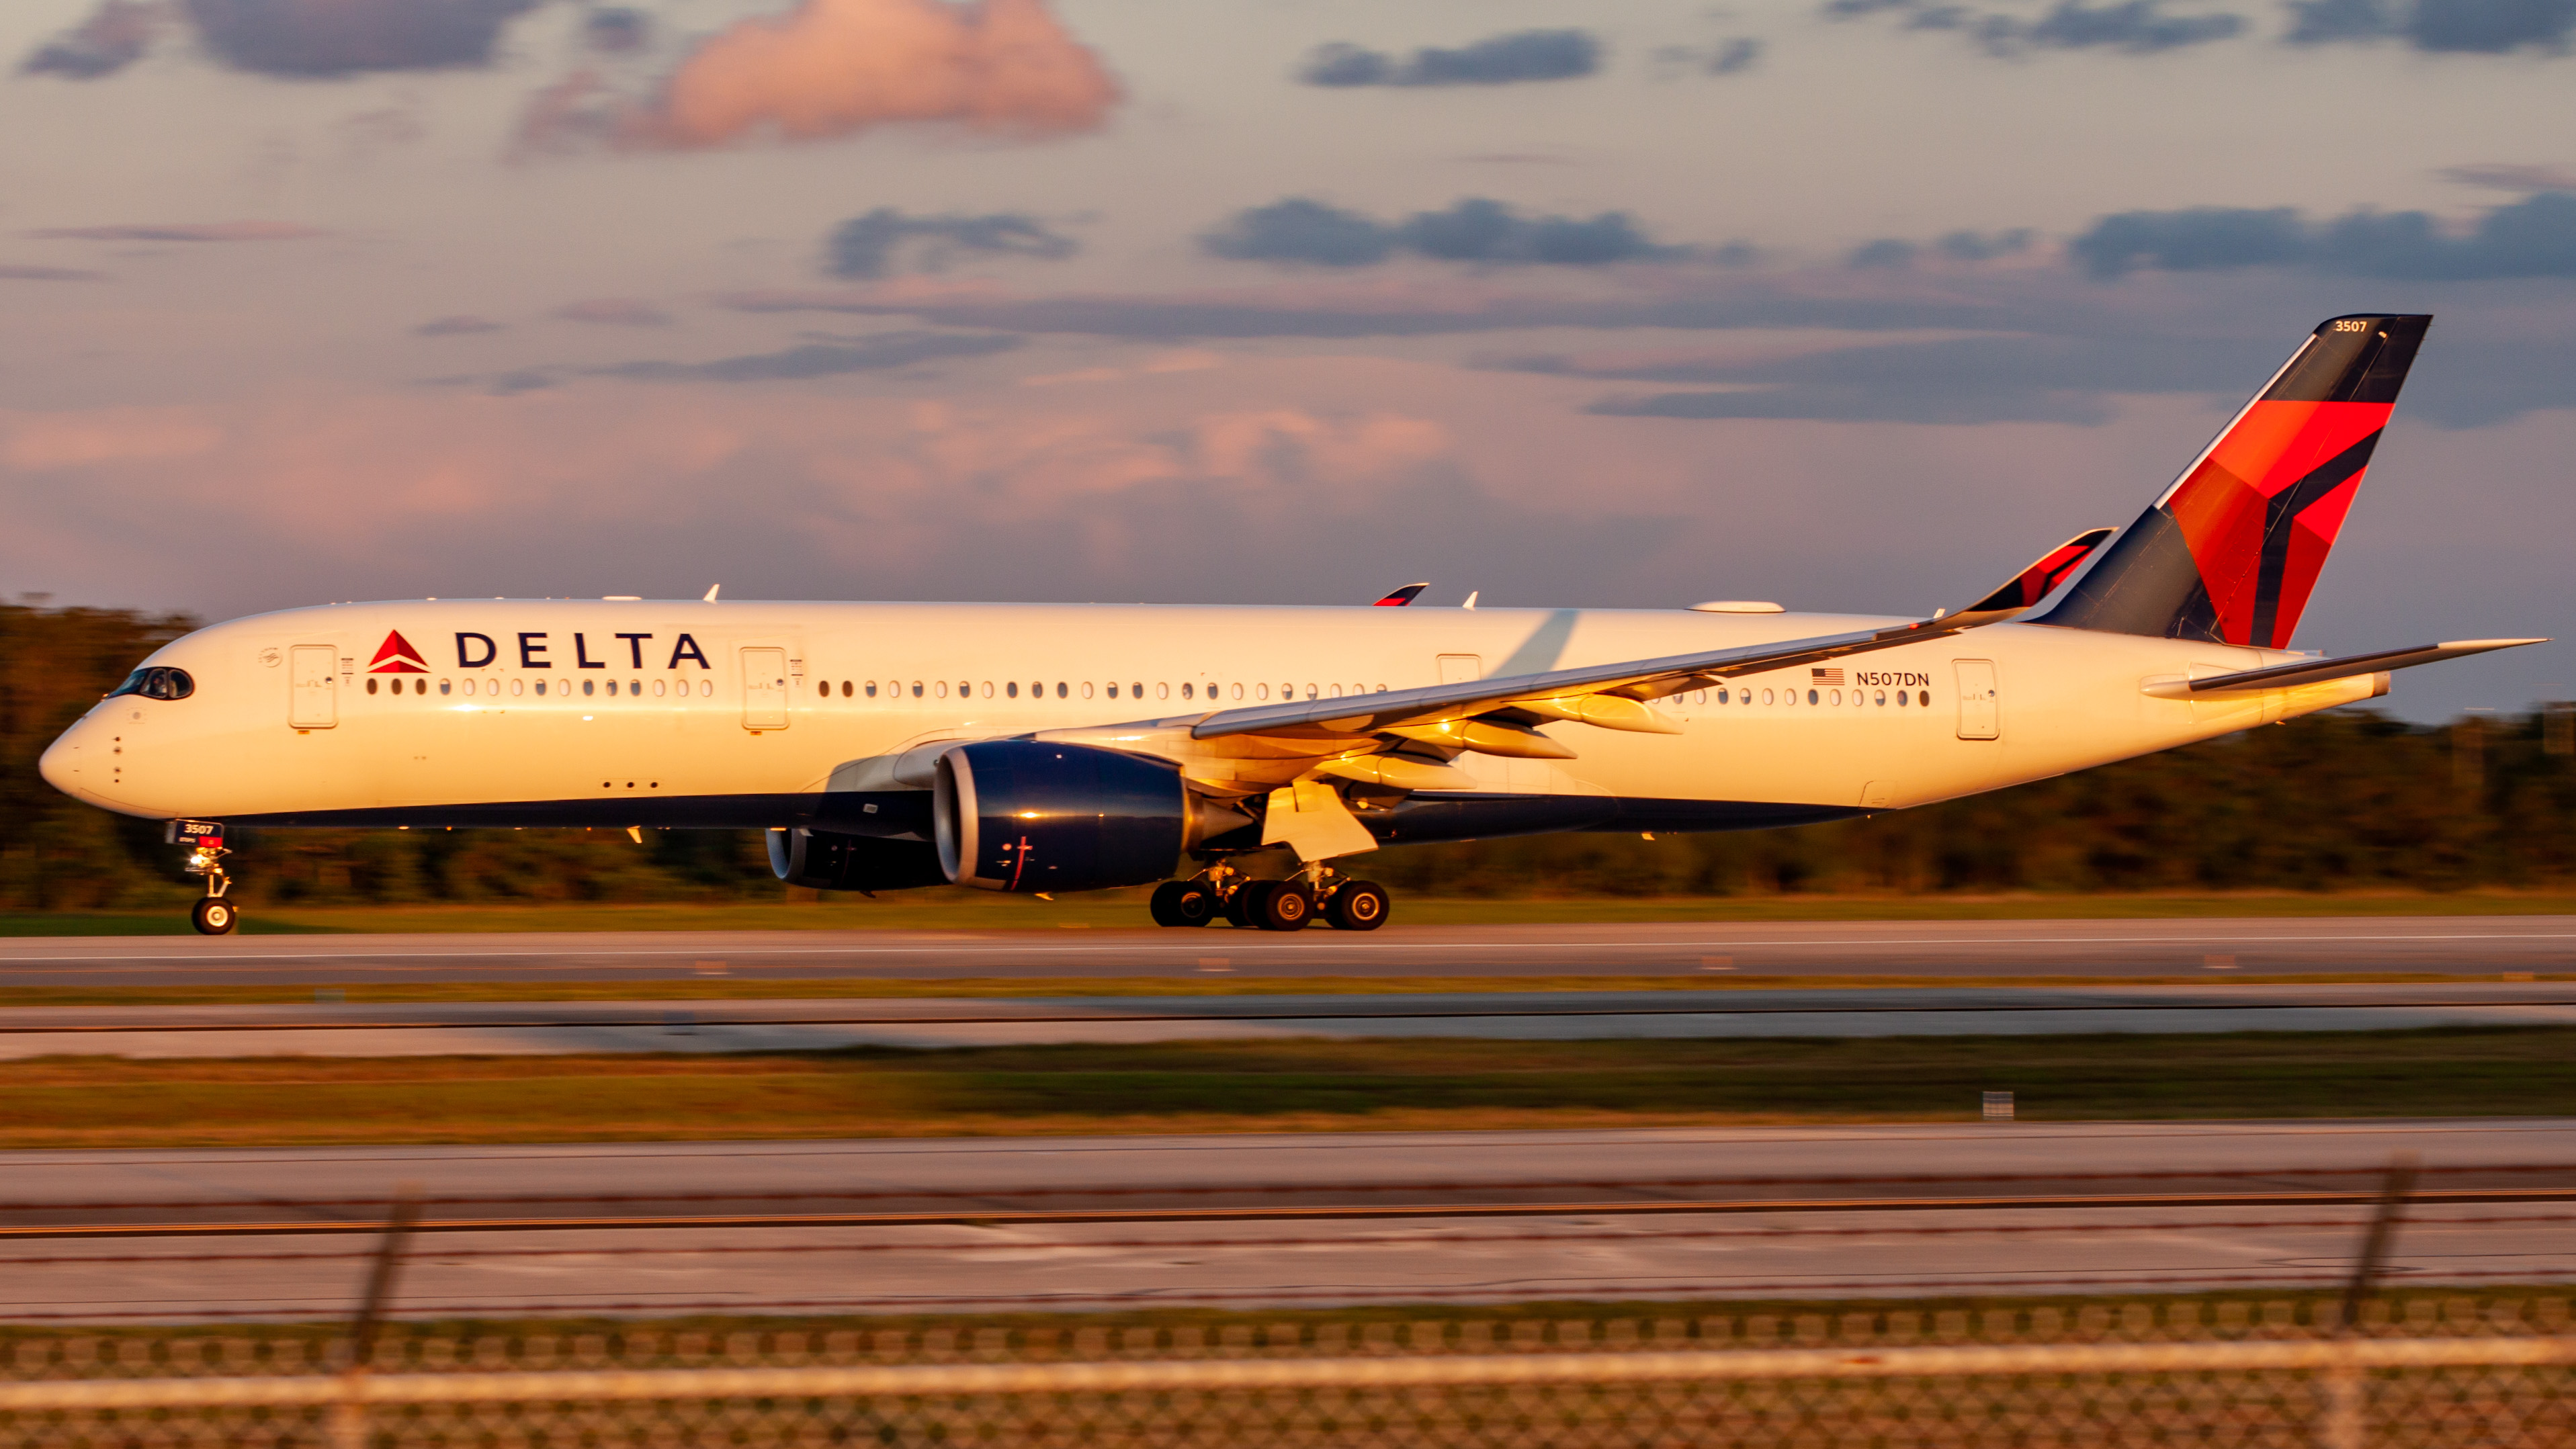 Photo of N507DN - Delta Airlines Airbus A350-900 at MCO